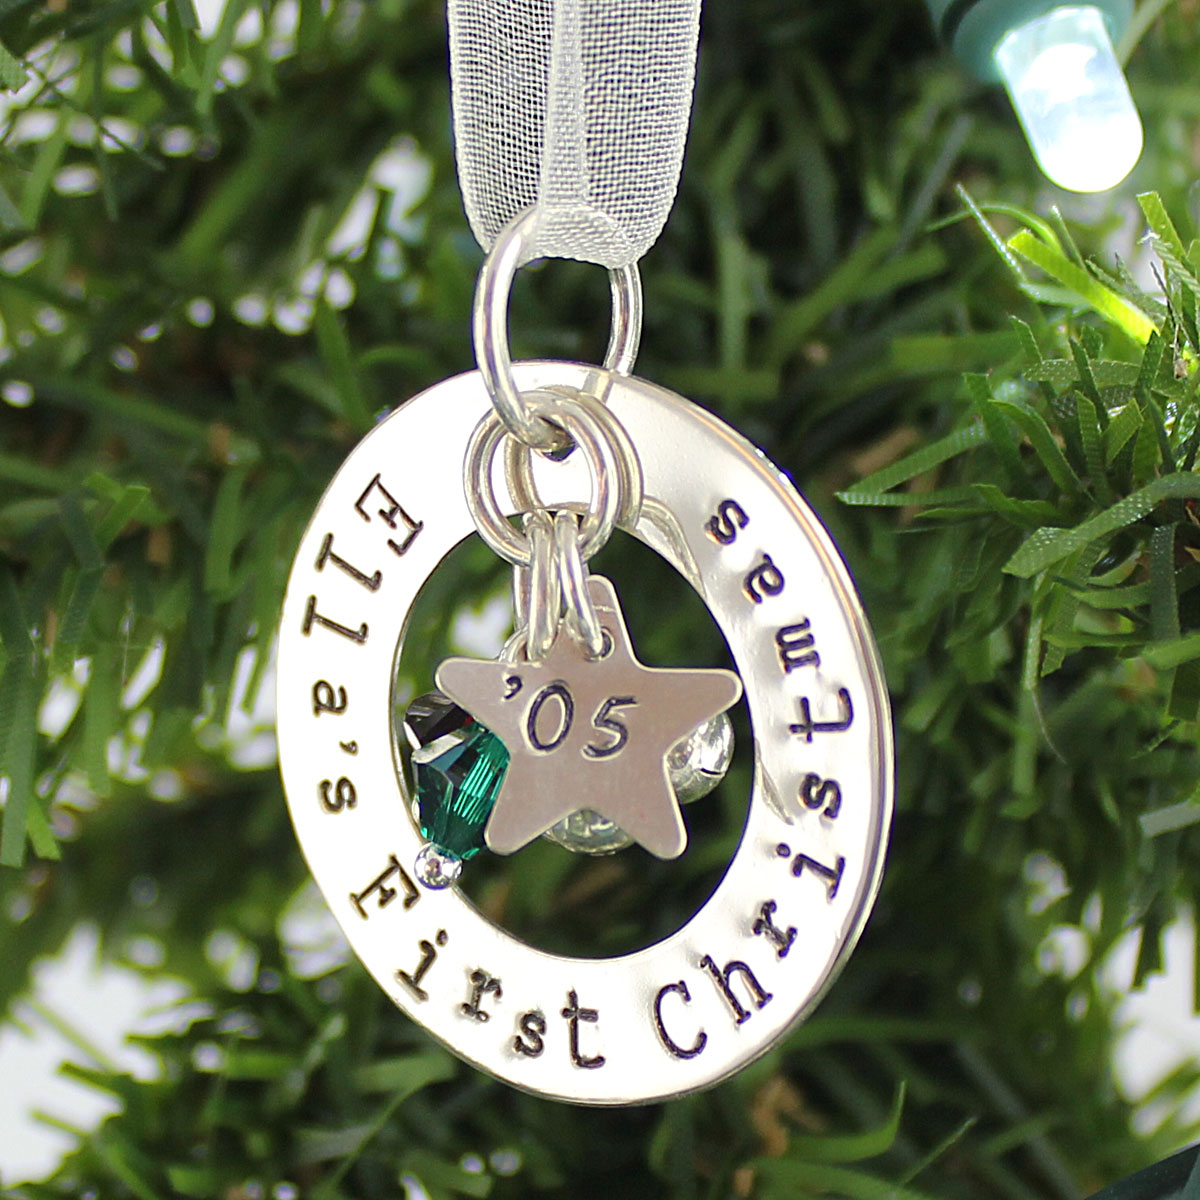 First Christmas Personalized Ornament Keepsake with Crystals and Bells